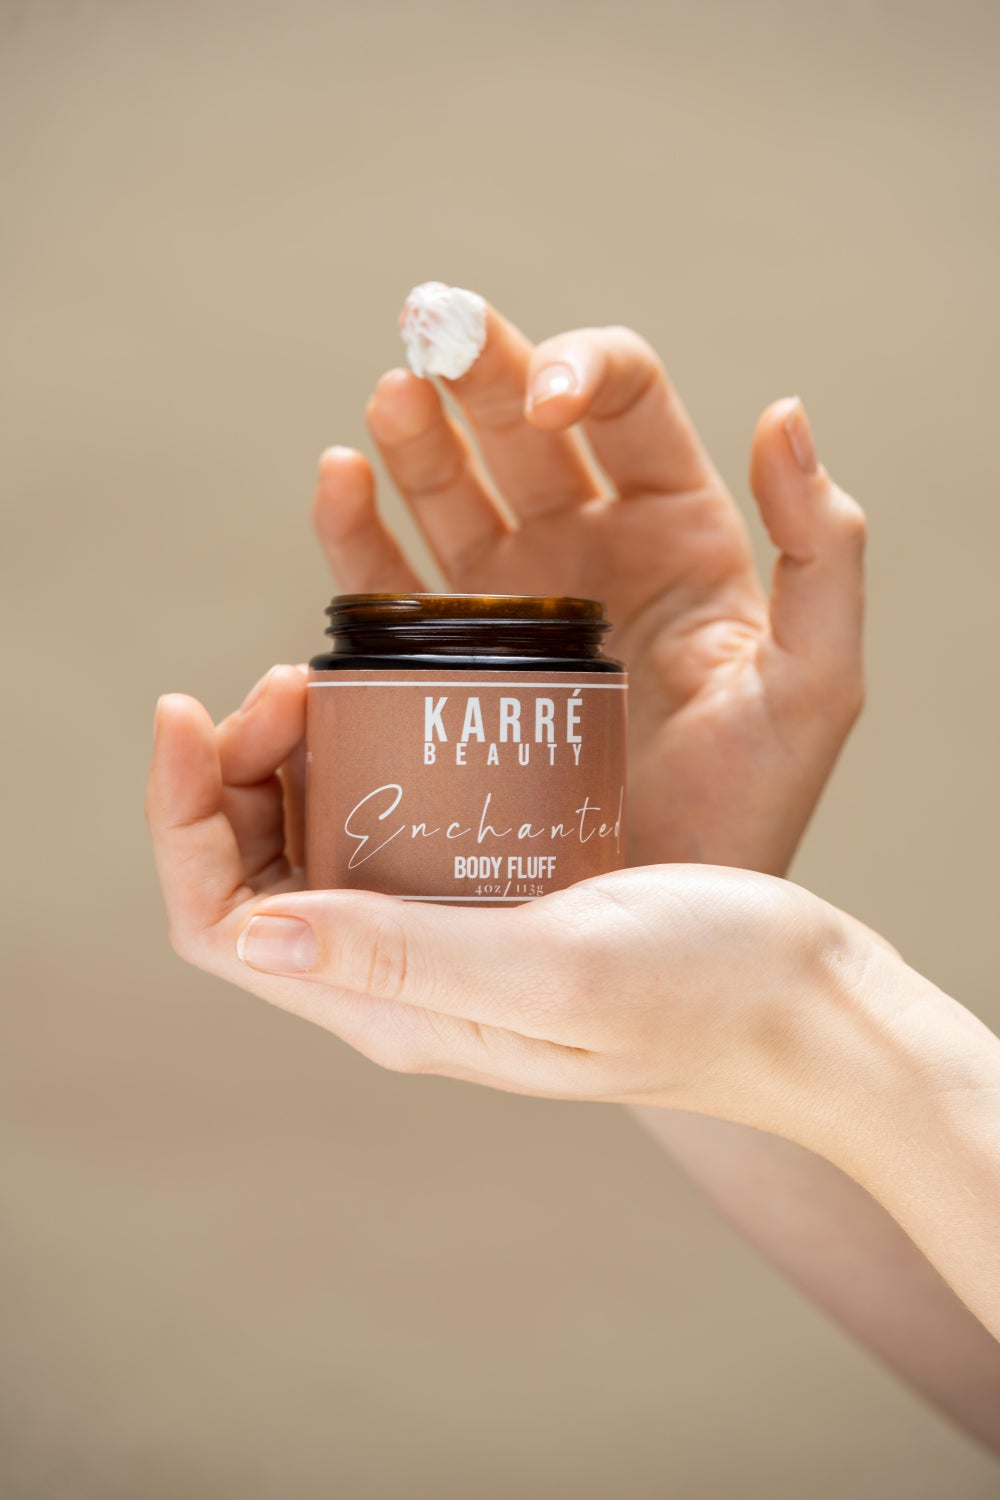 Image of KARRÉ BODY FLUFF